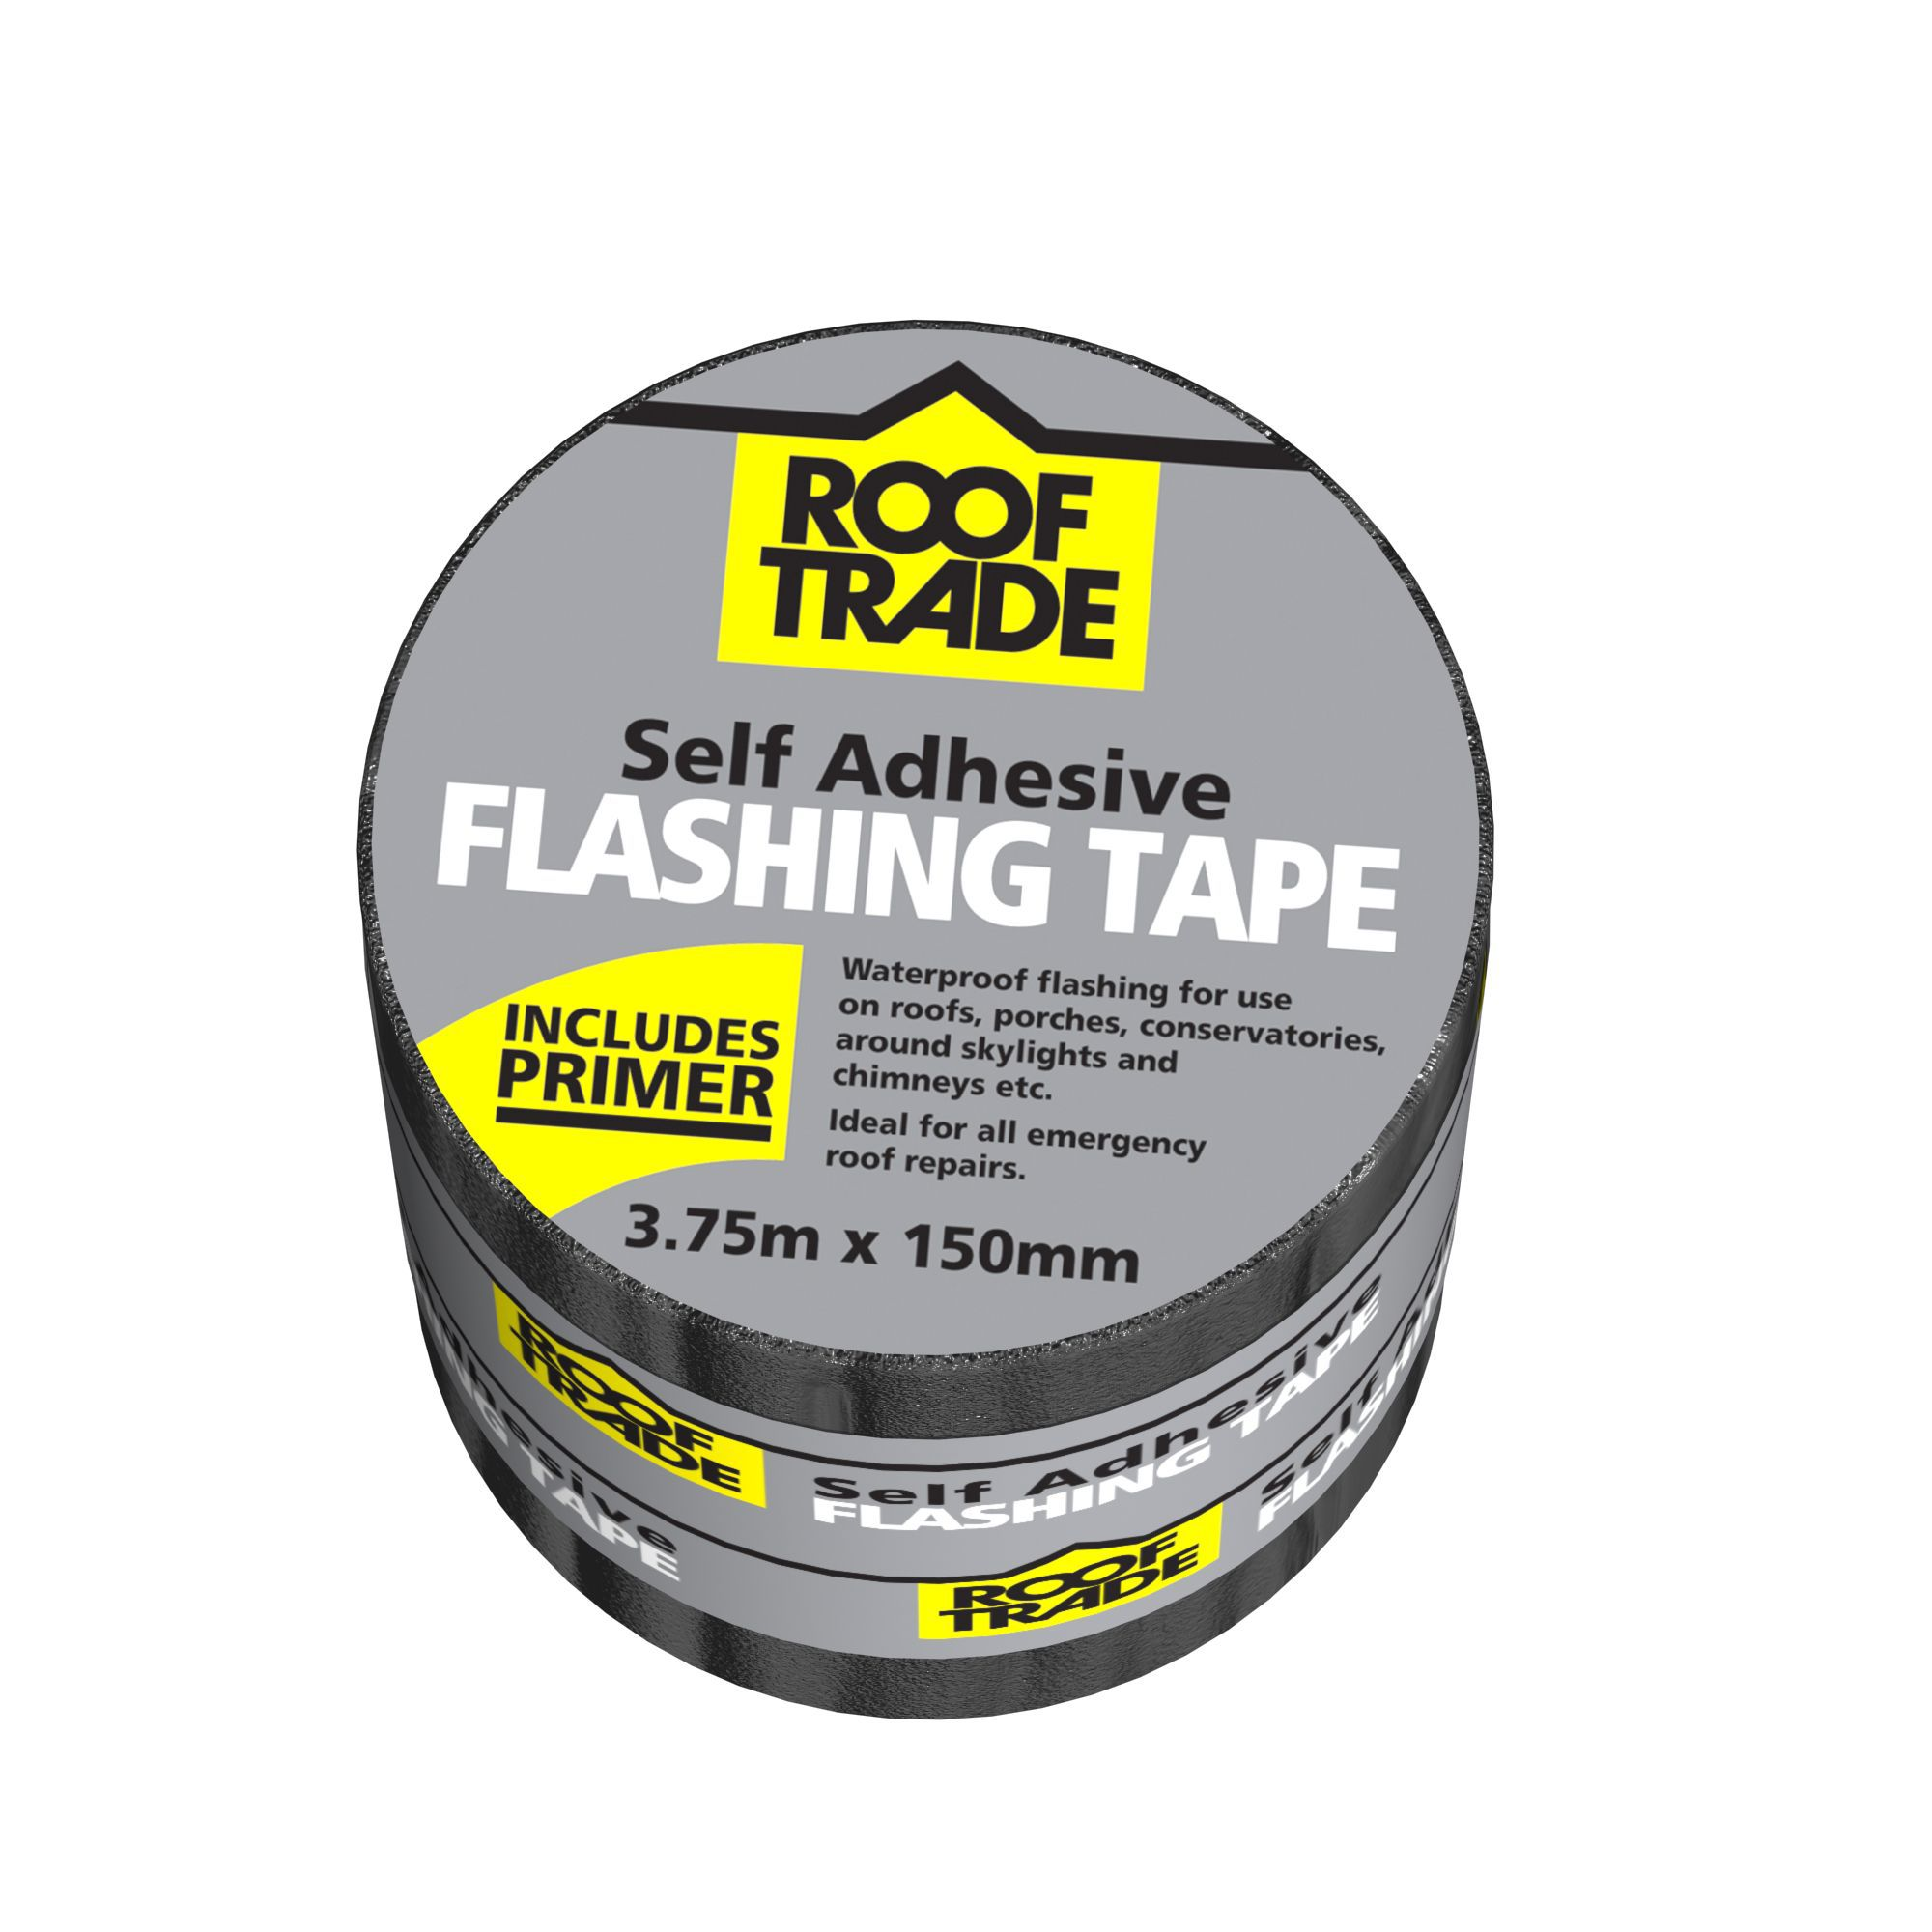 Evo-stik Rooftrade Grey Flashing Tape (l)3.75m (w)150mm